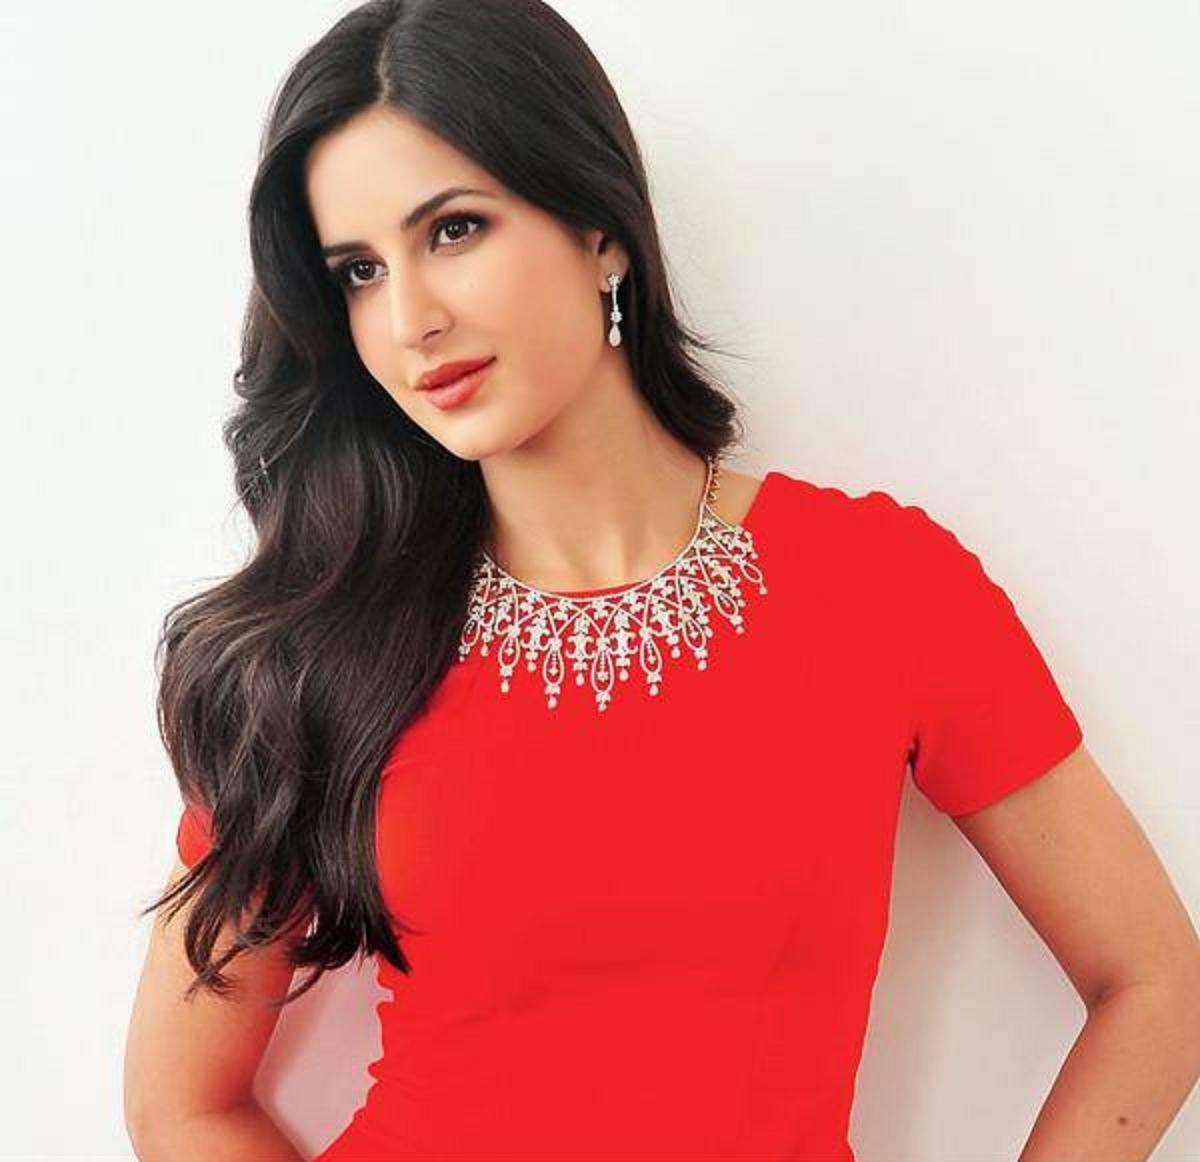 Bollywood Actress Katrina Kaif Latest Hot Pictures -5340